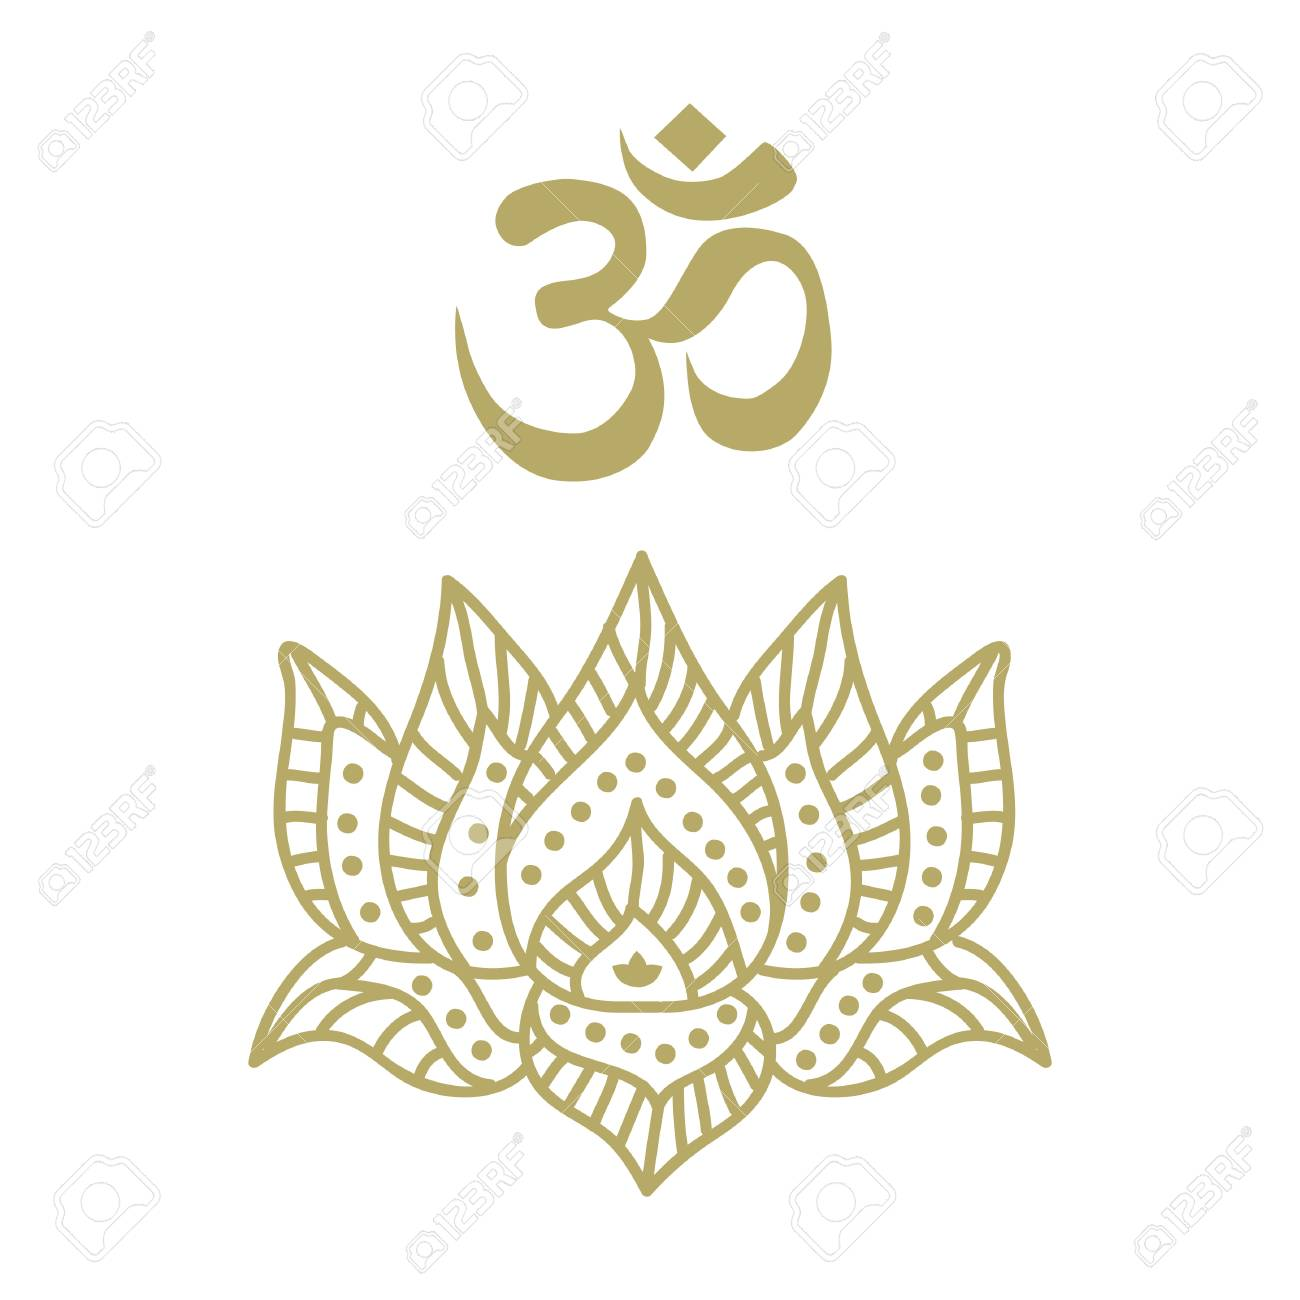 Stylized Lotus Flower With Om Symbol Royalty Free Cliparts Vectors